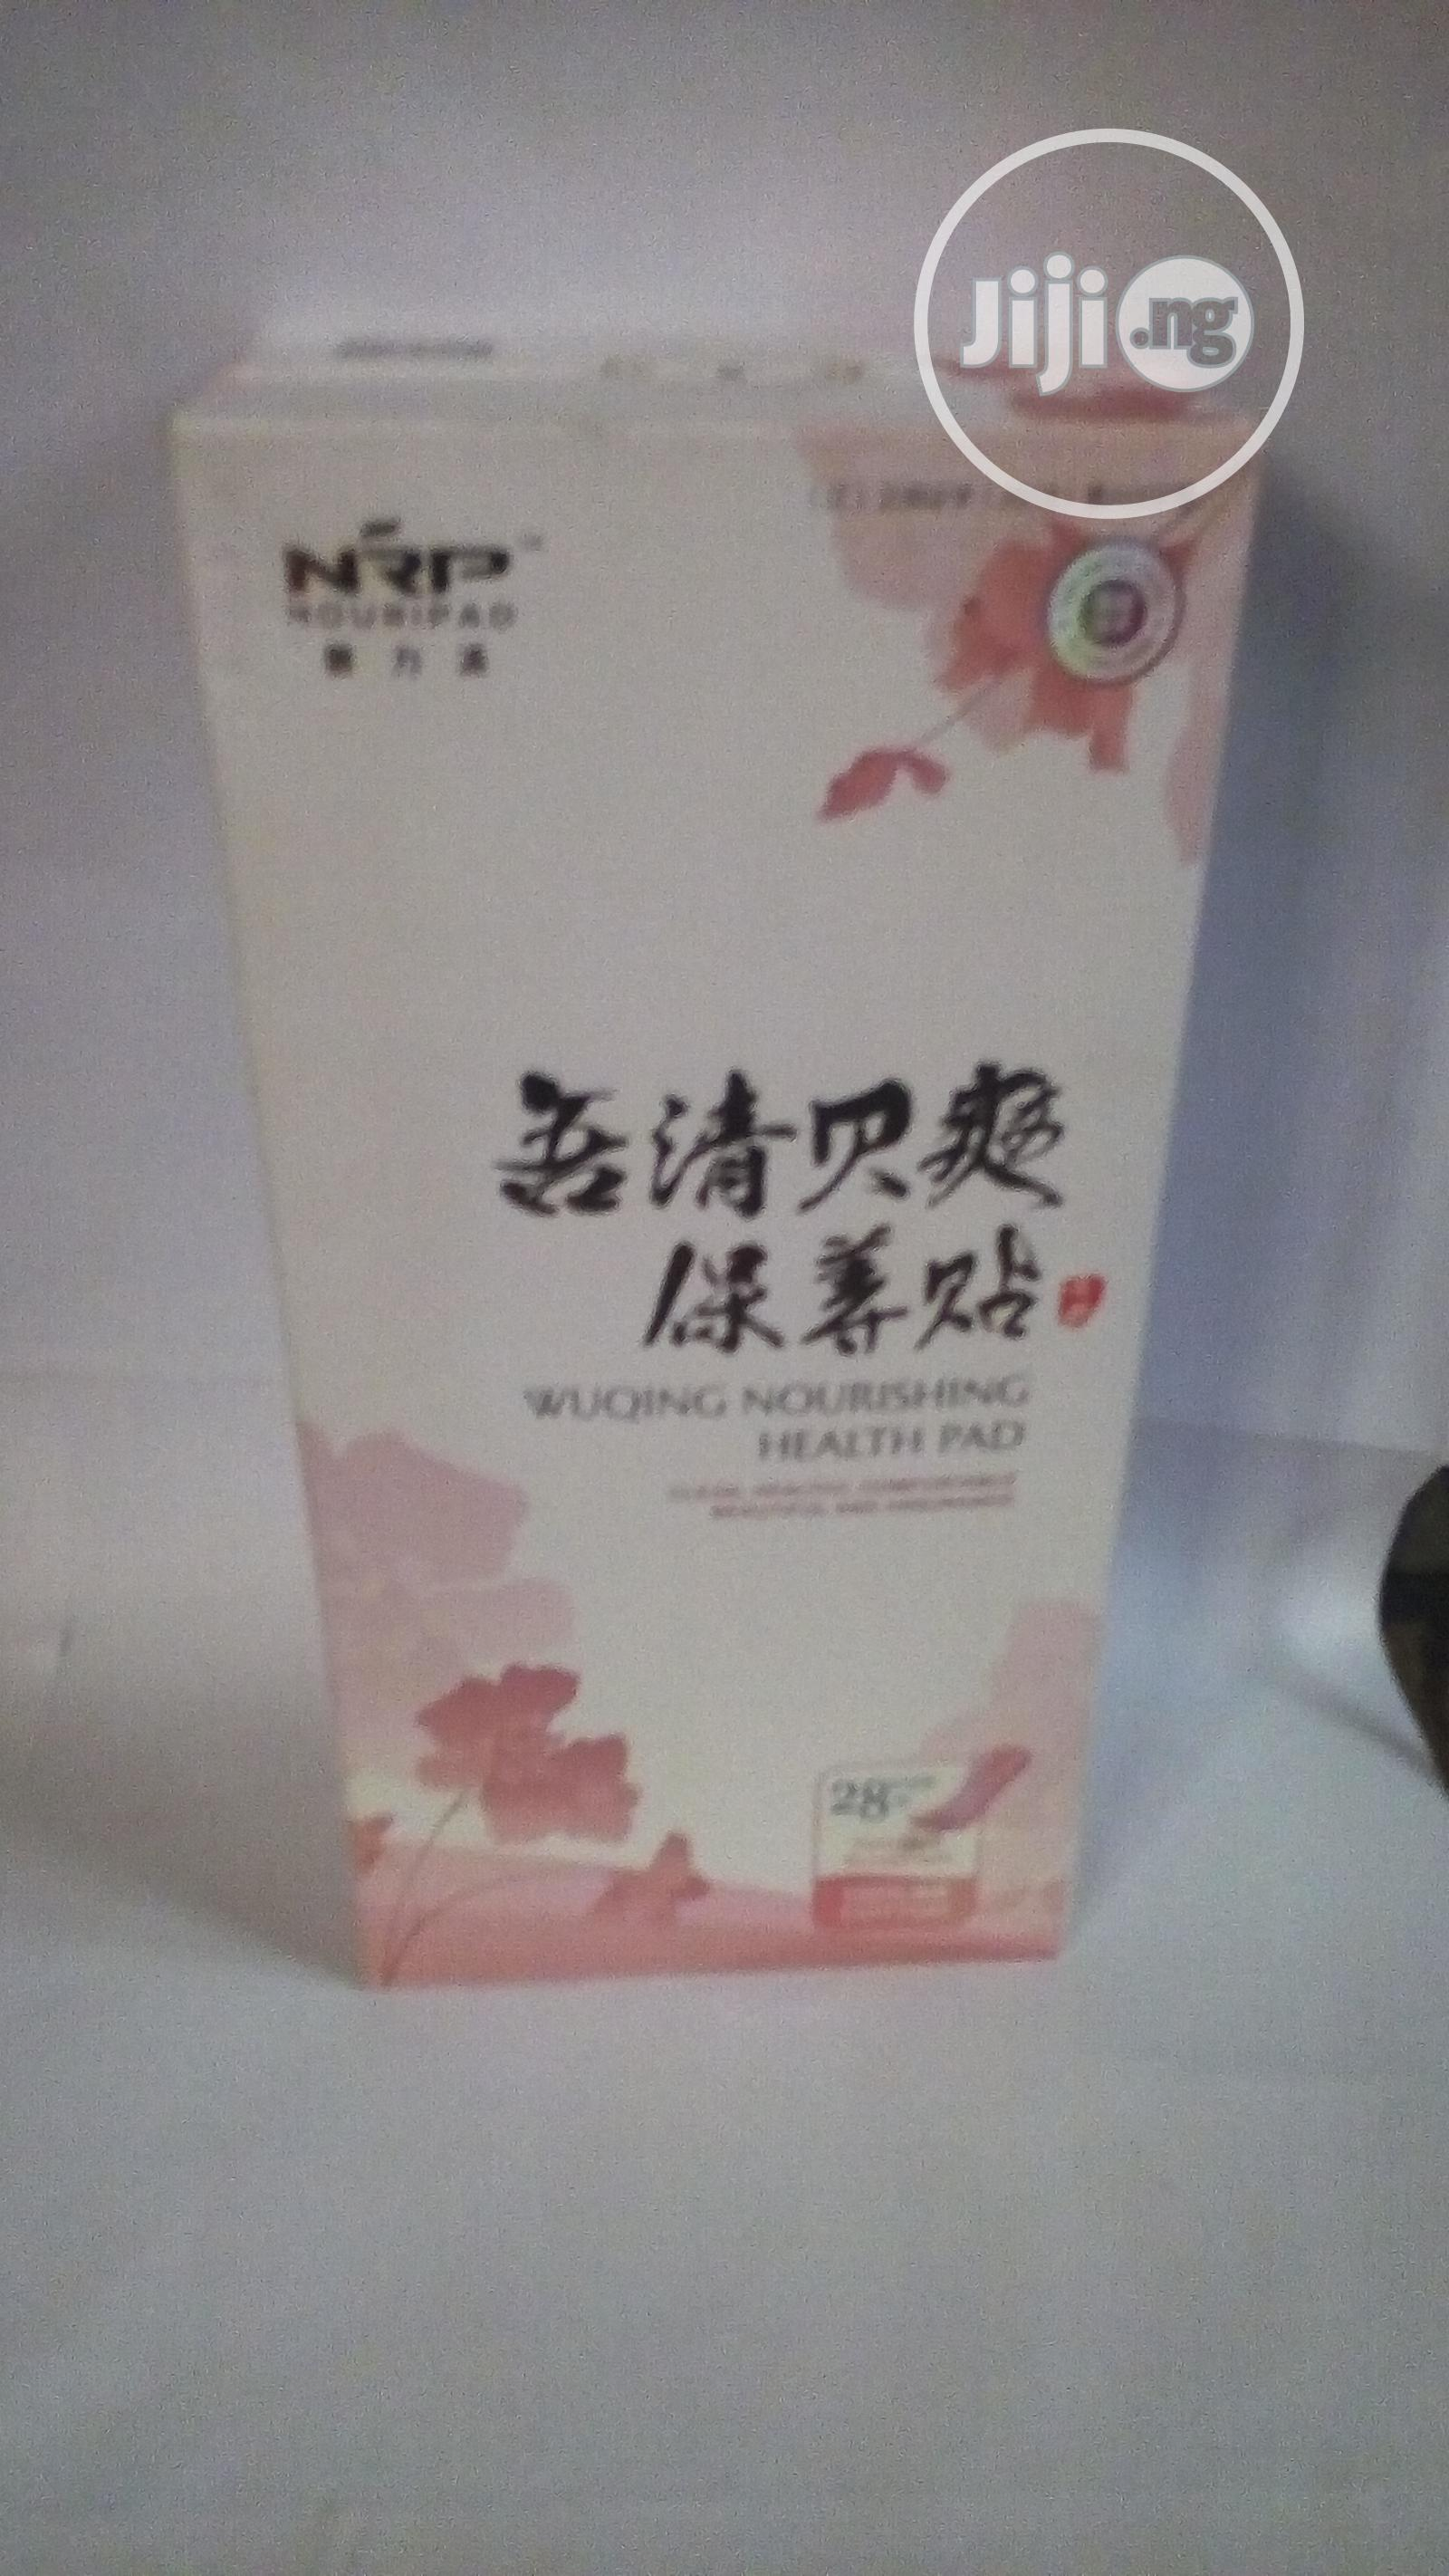 Wuqing Nourishing Female Health Pad For Prostate Enlargement And Utis